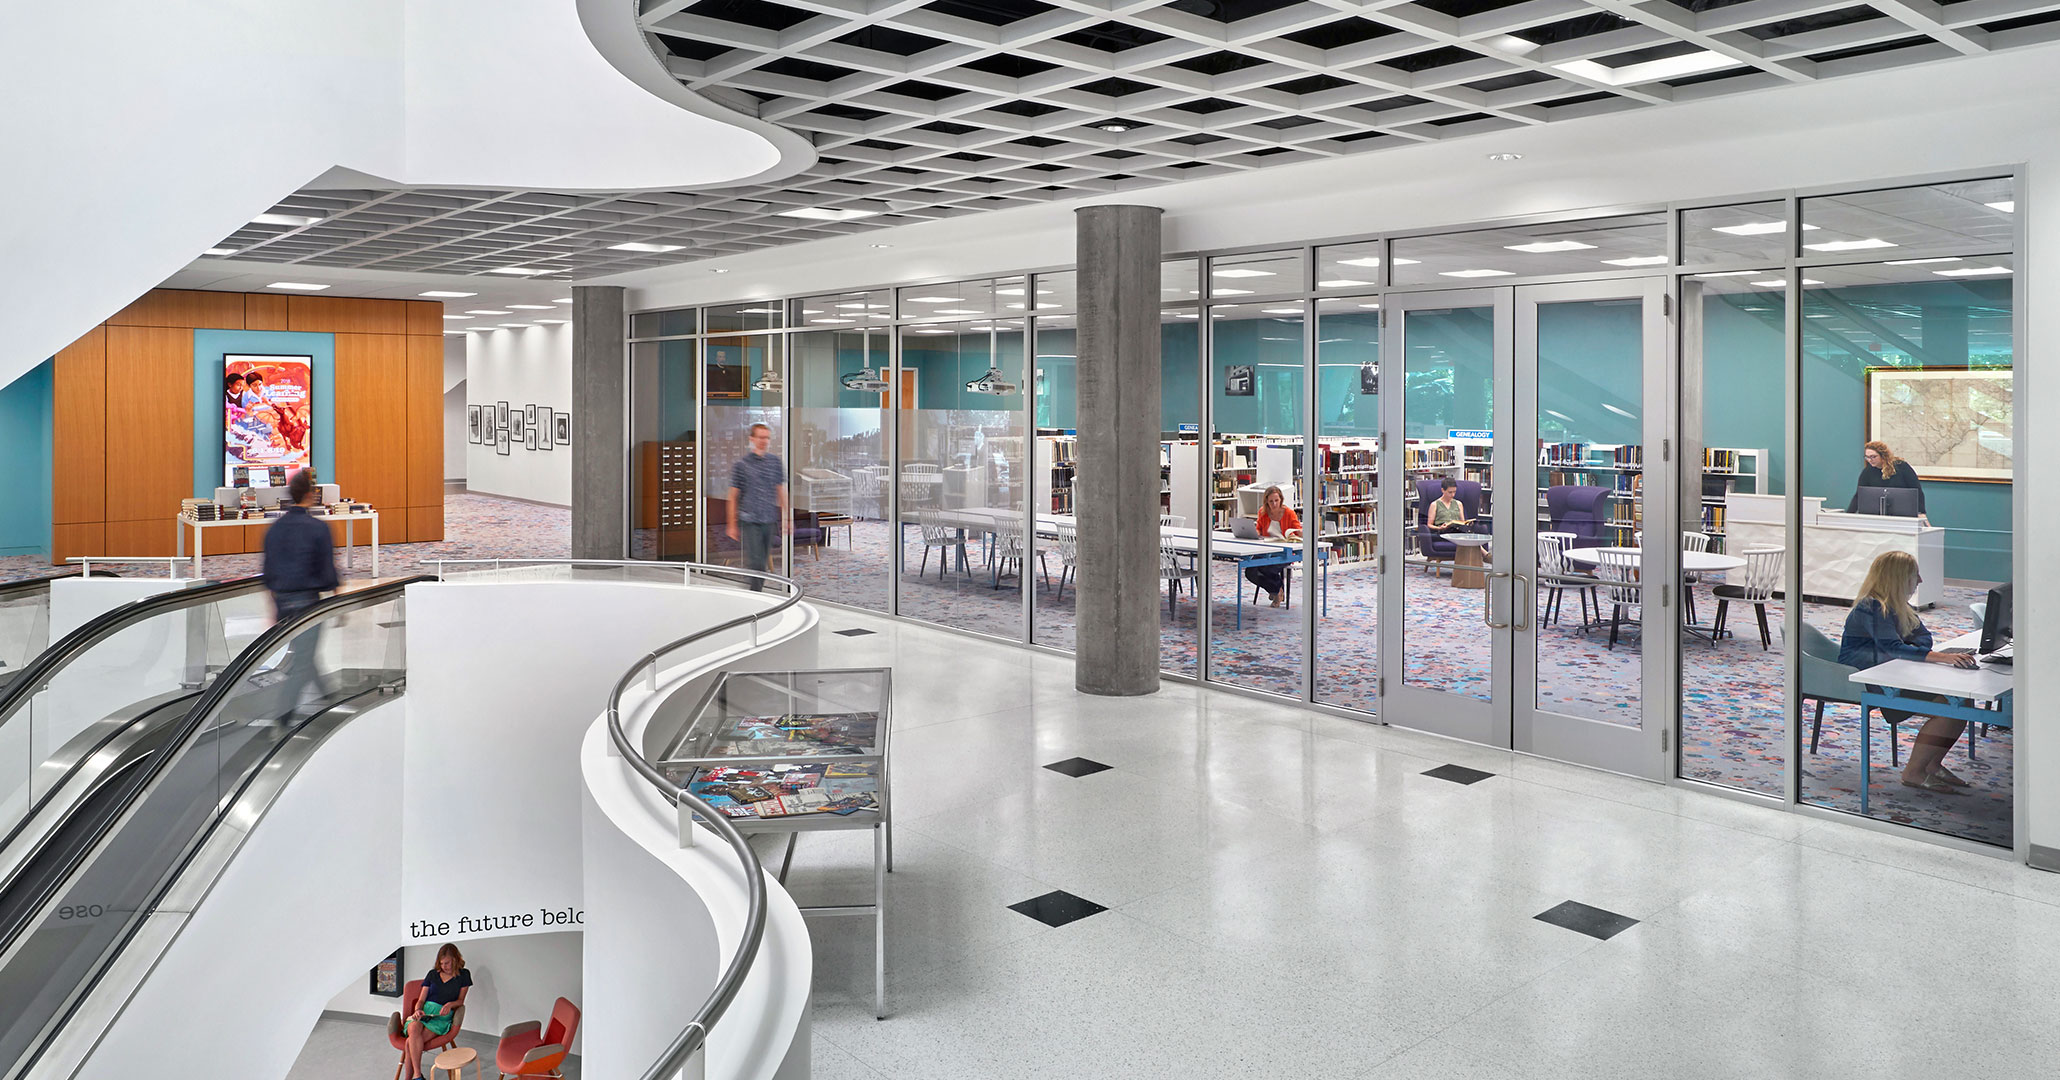 Richland County Library worked with Boudreaux architects to design high end spaces.